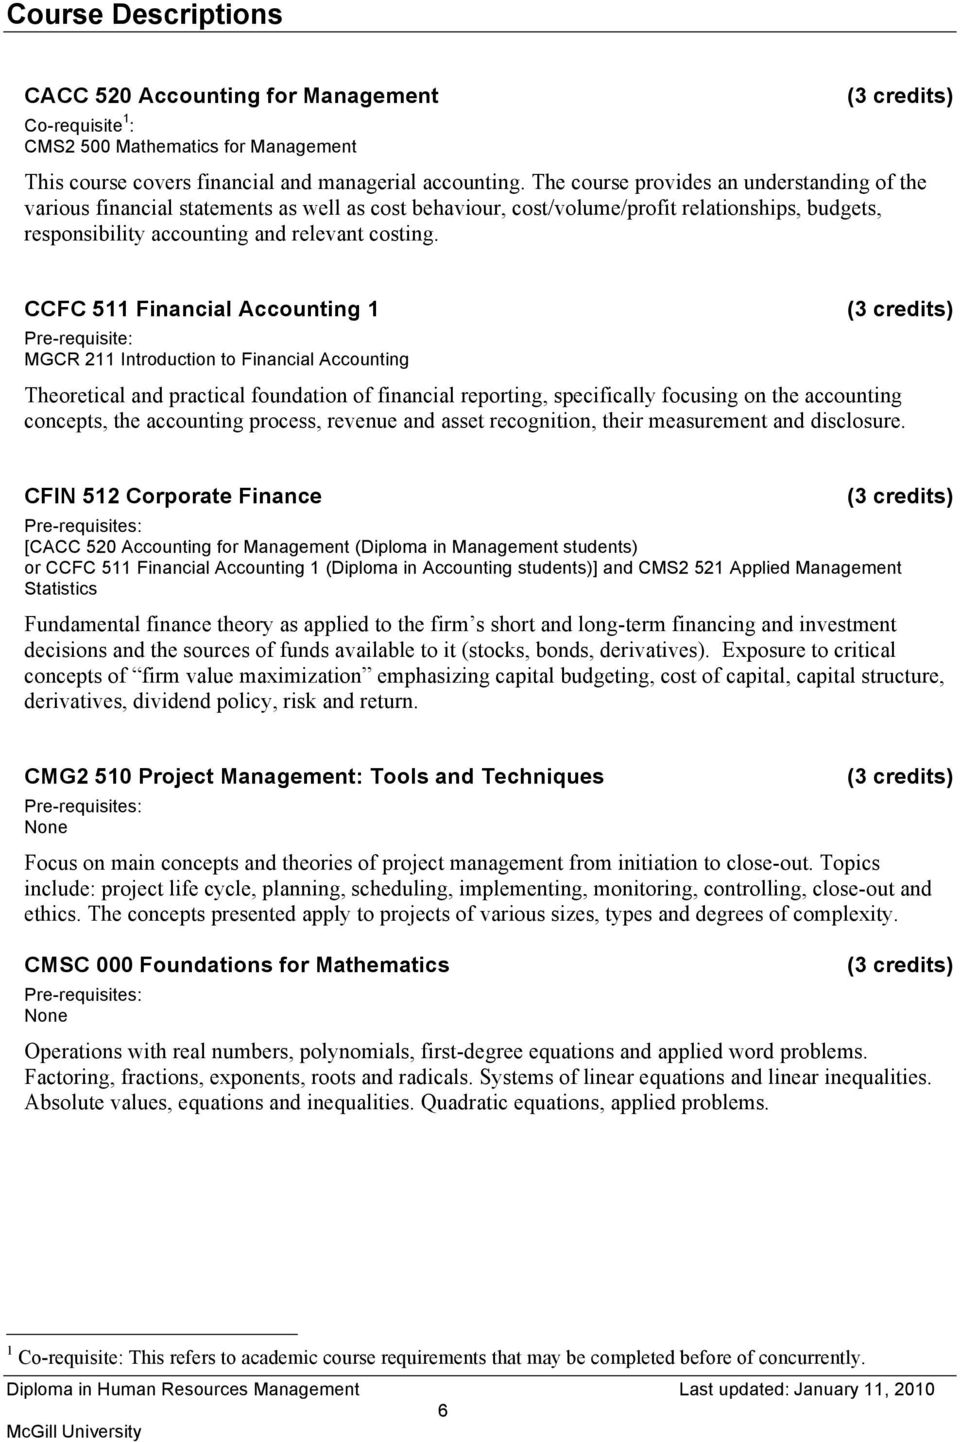 CCFC 511 Financial Accounting 1 Pre-requisite: MGCR 211 Introduction to Financial Accounting Theoretical and practical foundation of financial reporting, specifically focusing on the accounting